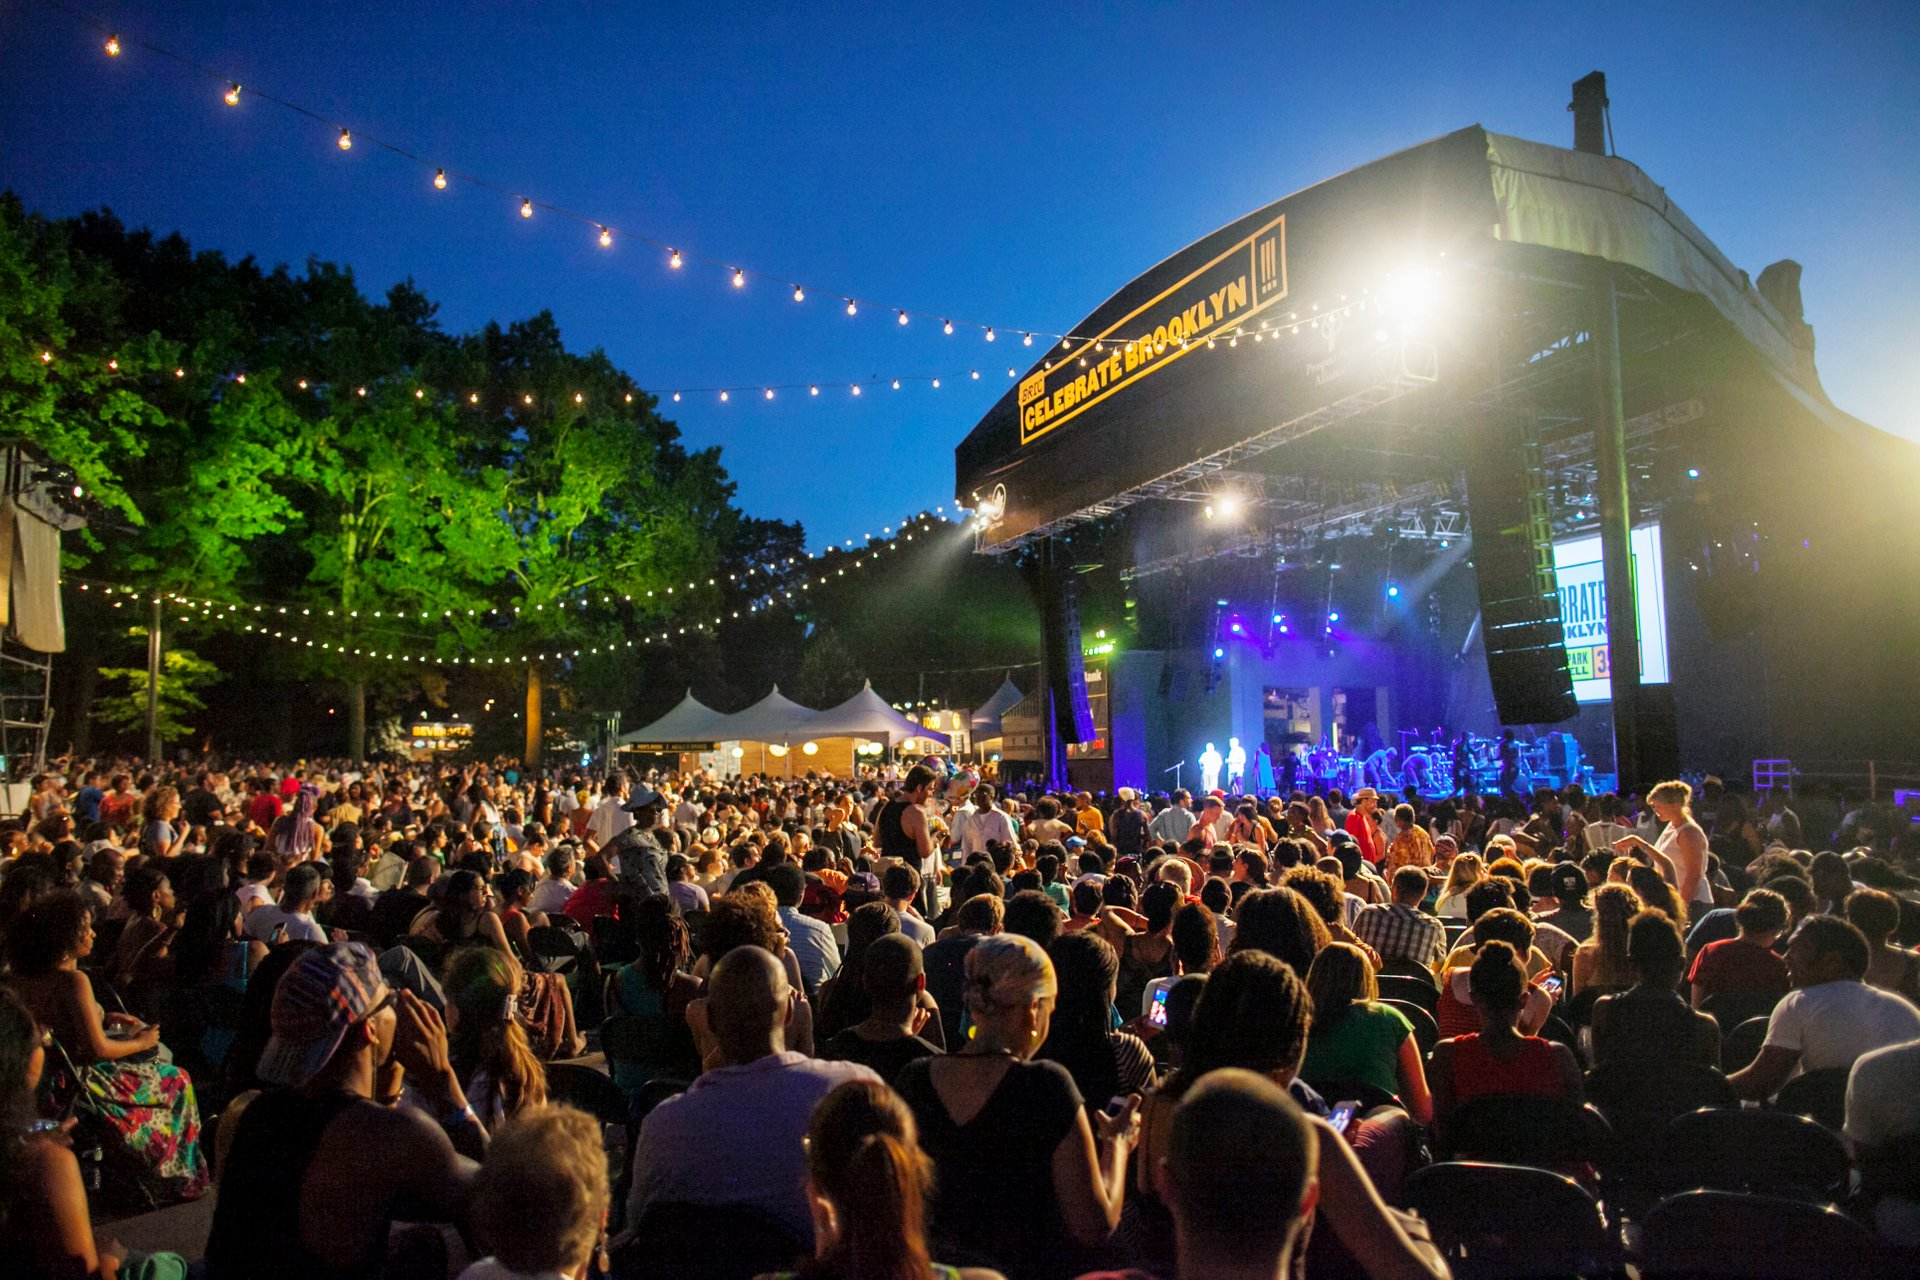 Summer Music Events in New York 2020 - Best Time